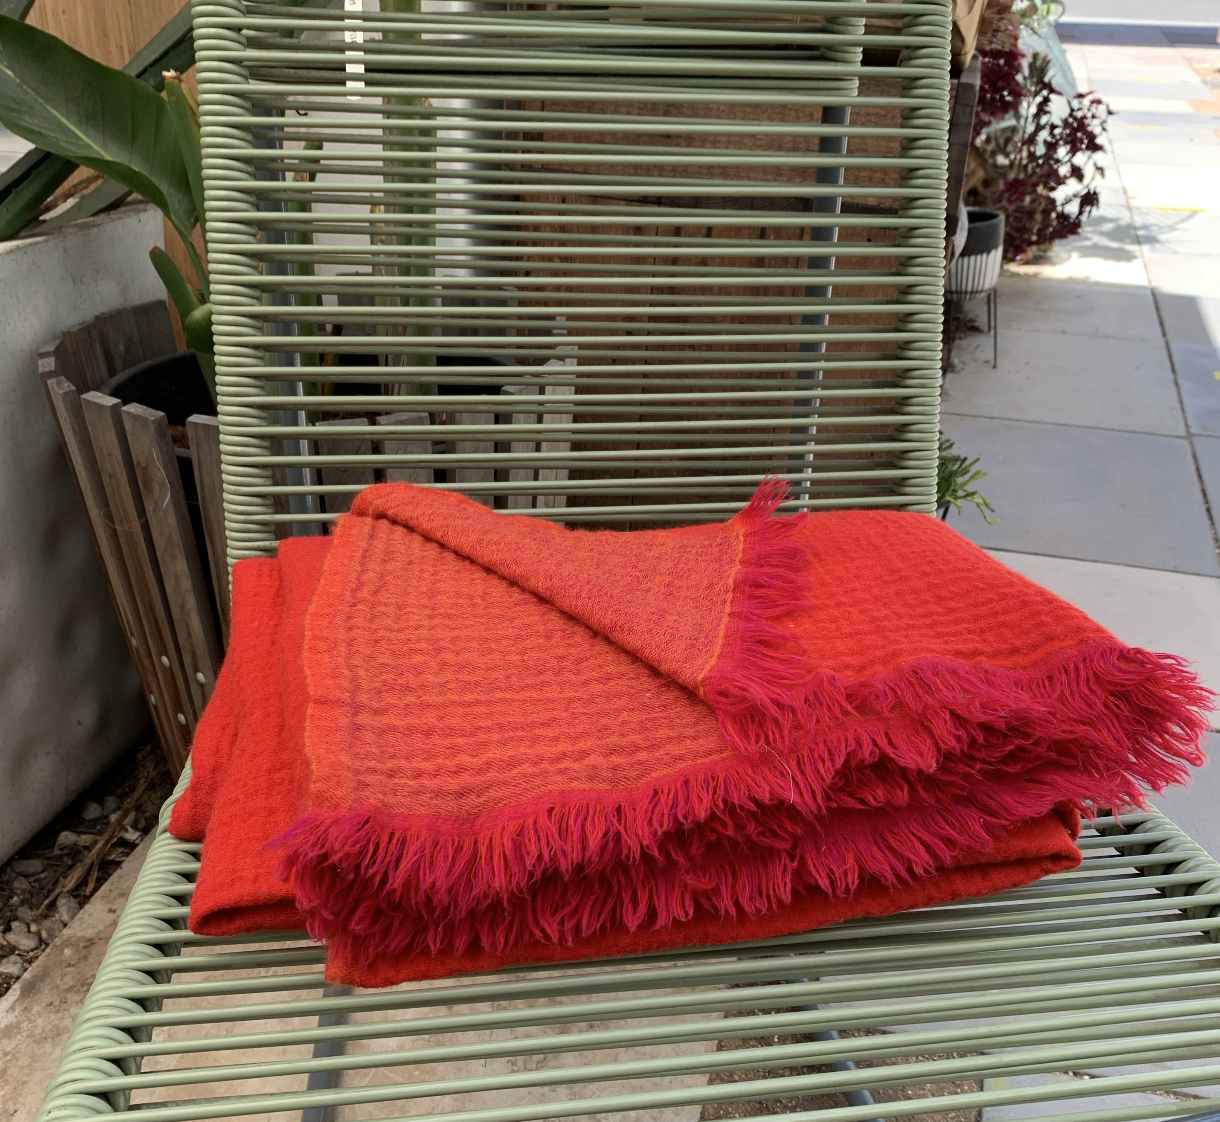 Boiled Wool Blanket 100% MADE IN India